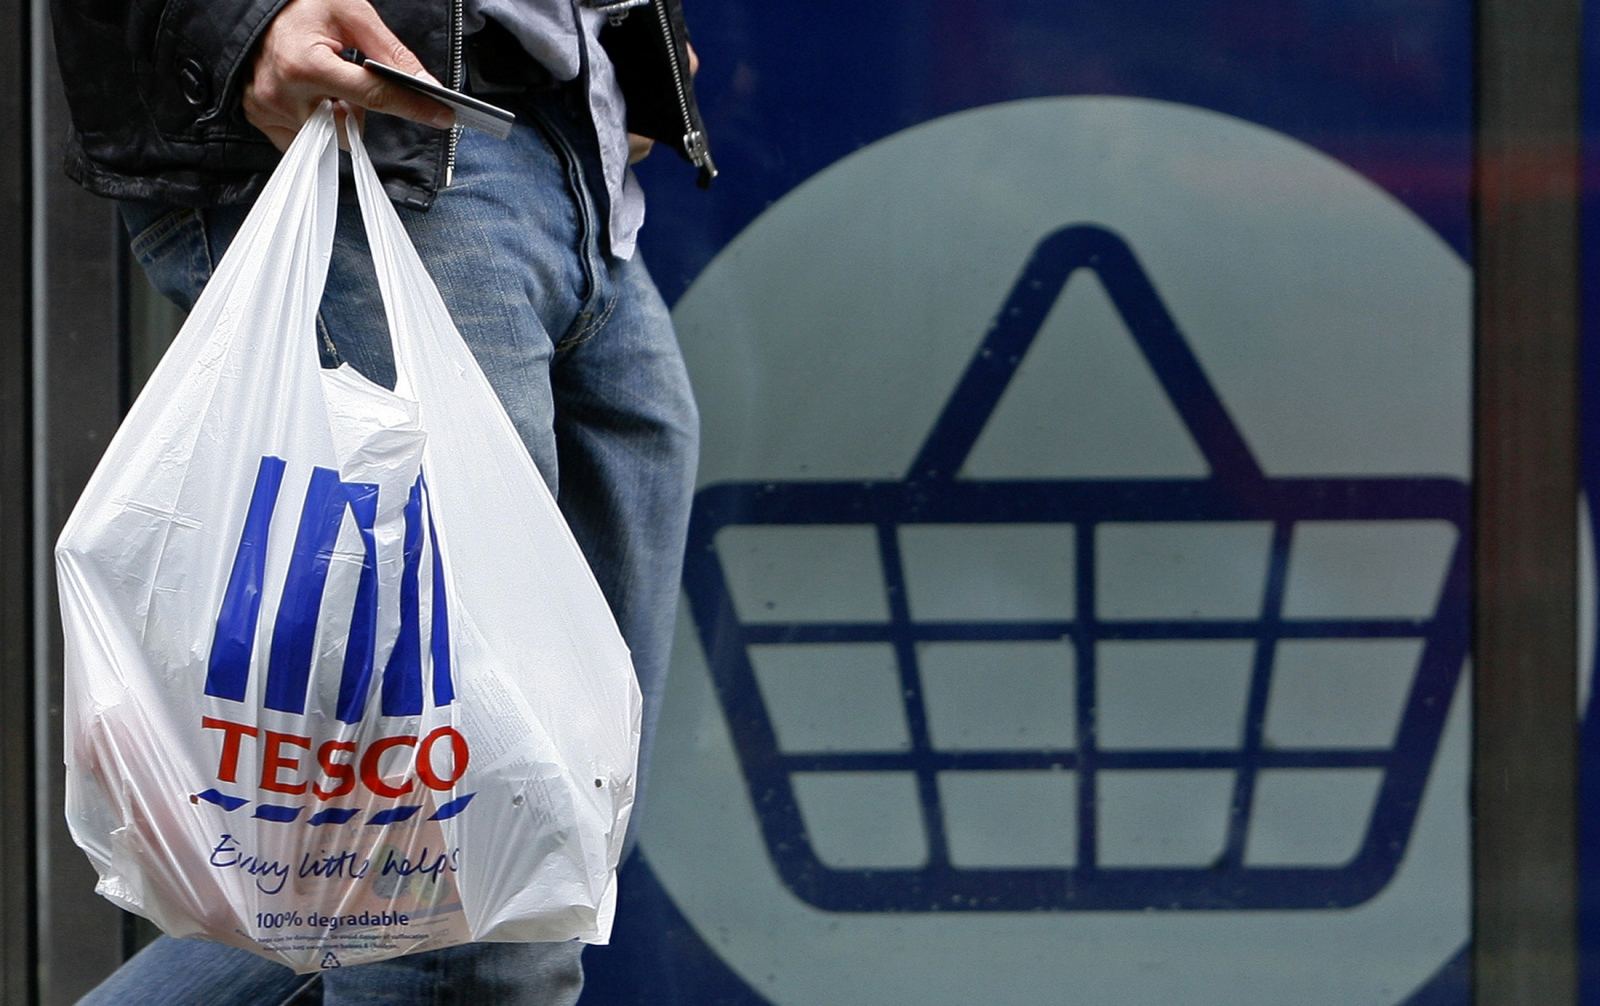 Tesco is fielding probes from three regulators